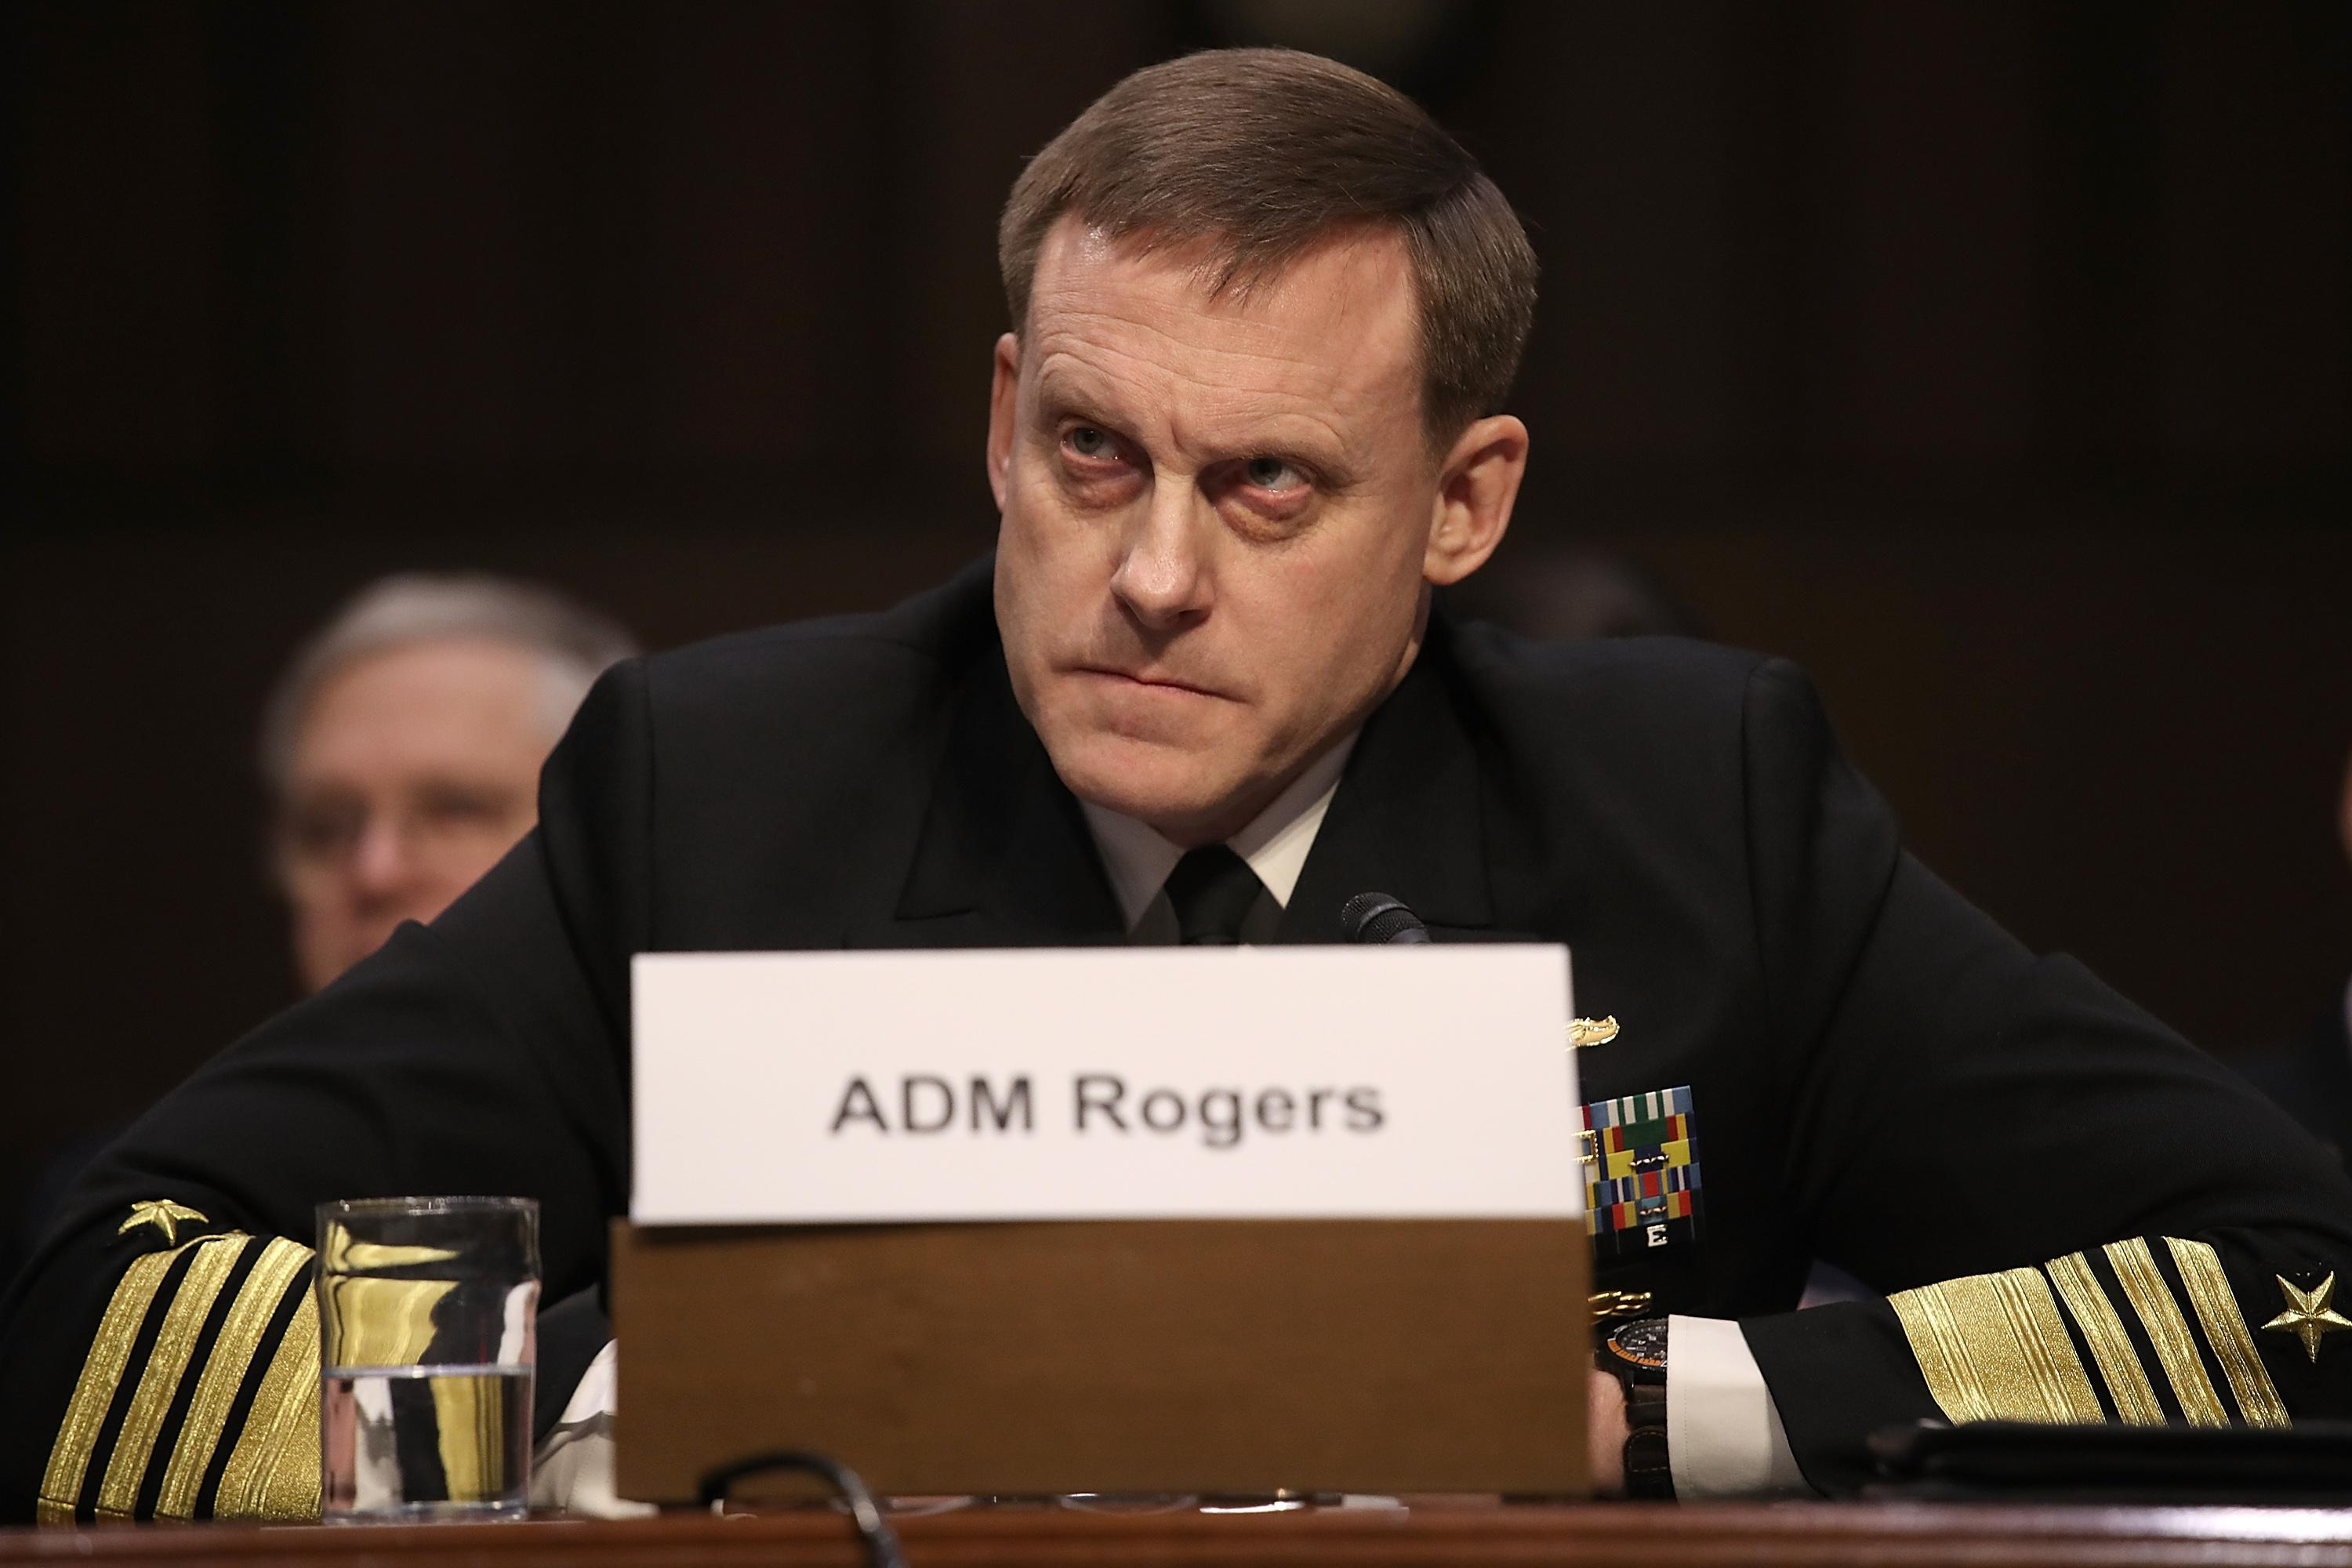 Navy Adm. Michael Rogers, commander of the United States Cyber Command, director of the National Security Agency and chief of Central Security Services, testifies before the Senate Armed Services Committee February 27, 2018 in Washington, DC.